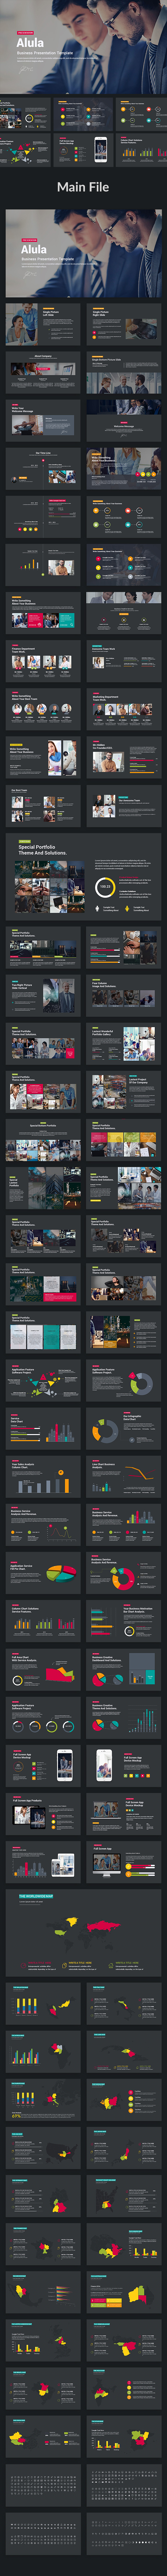 Alula - Business Powerpoint Template - PowerPoint Templates Presentation Templates